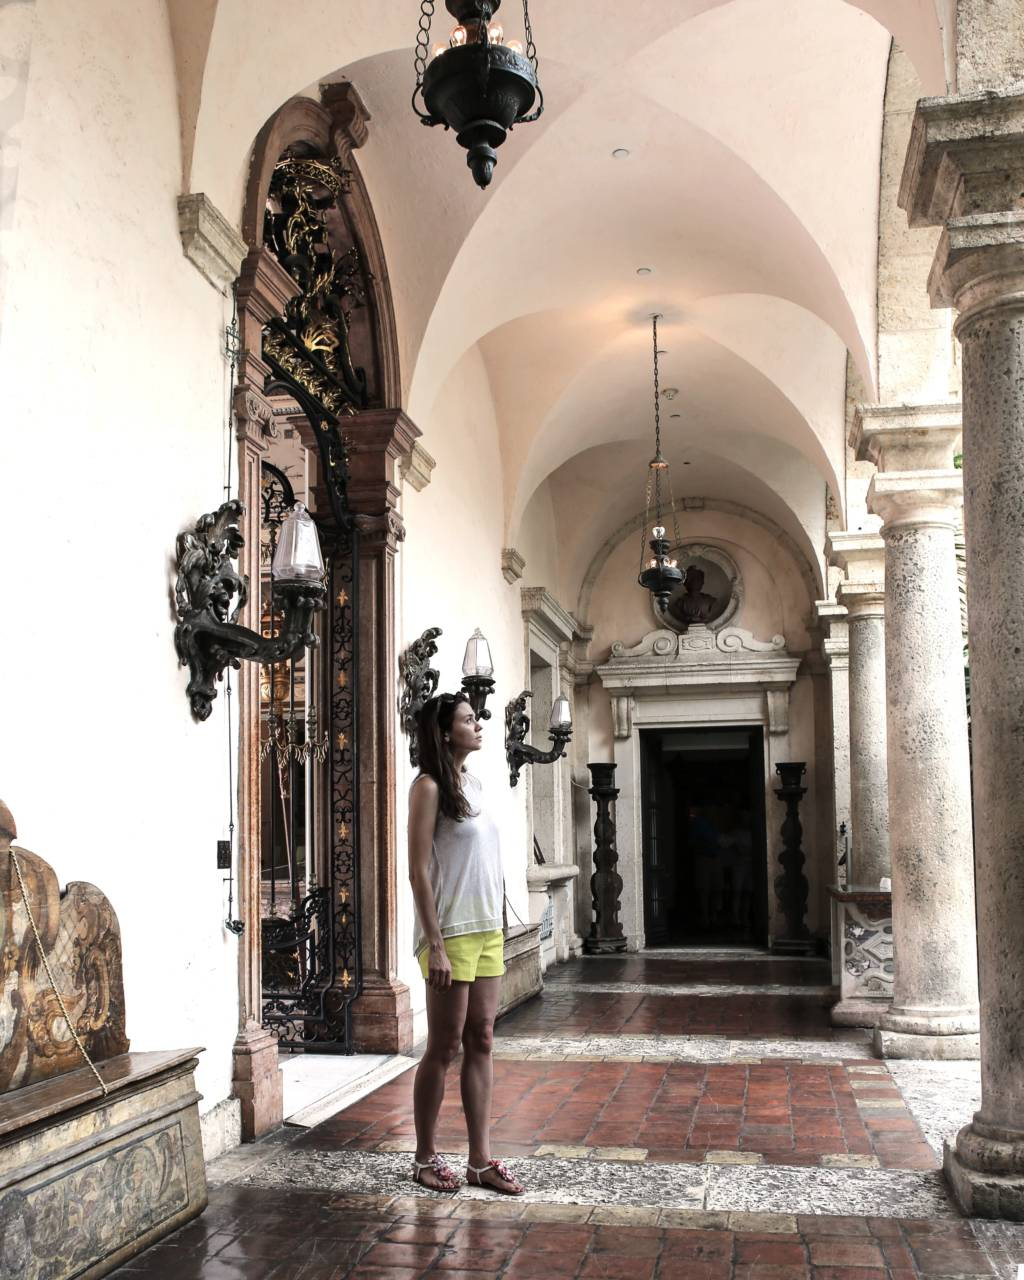 Vizcaya offers extensive gardens and spectacular interior design, great fun for the whole family in Florida.